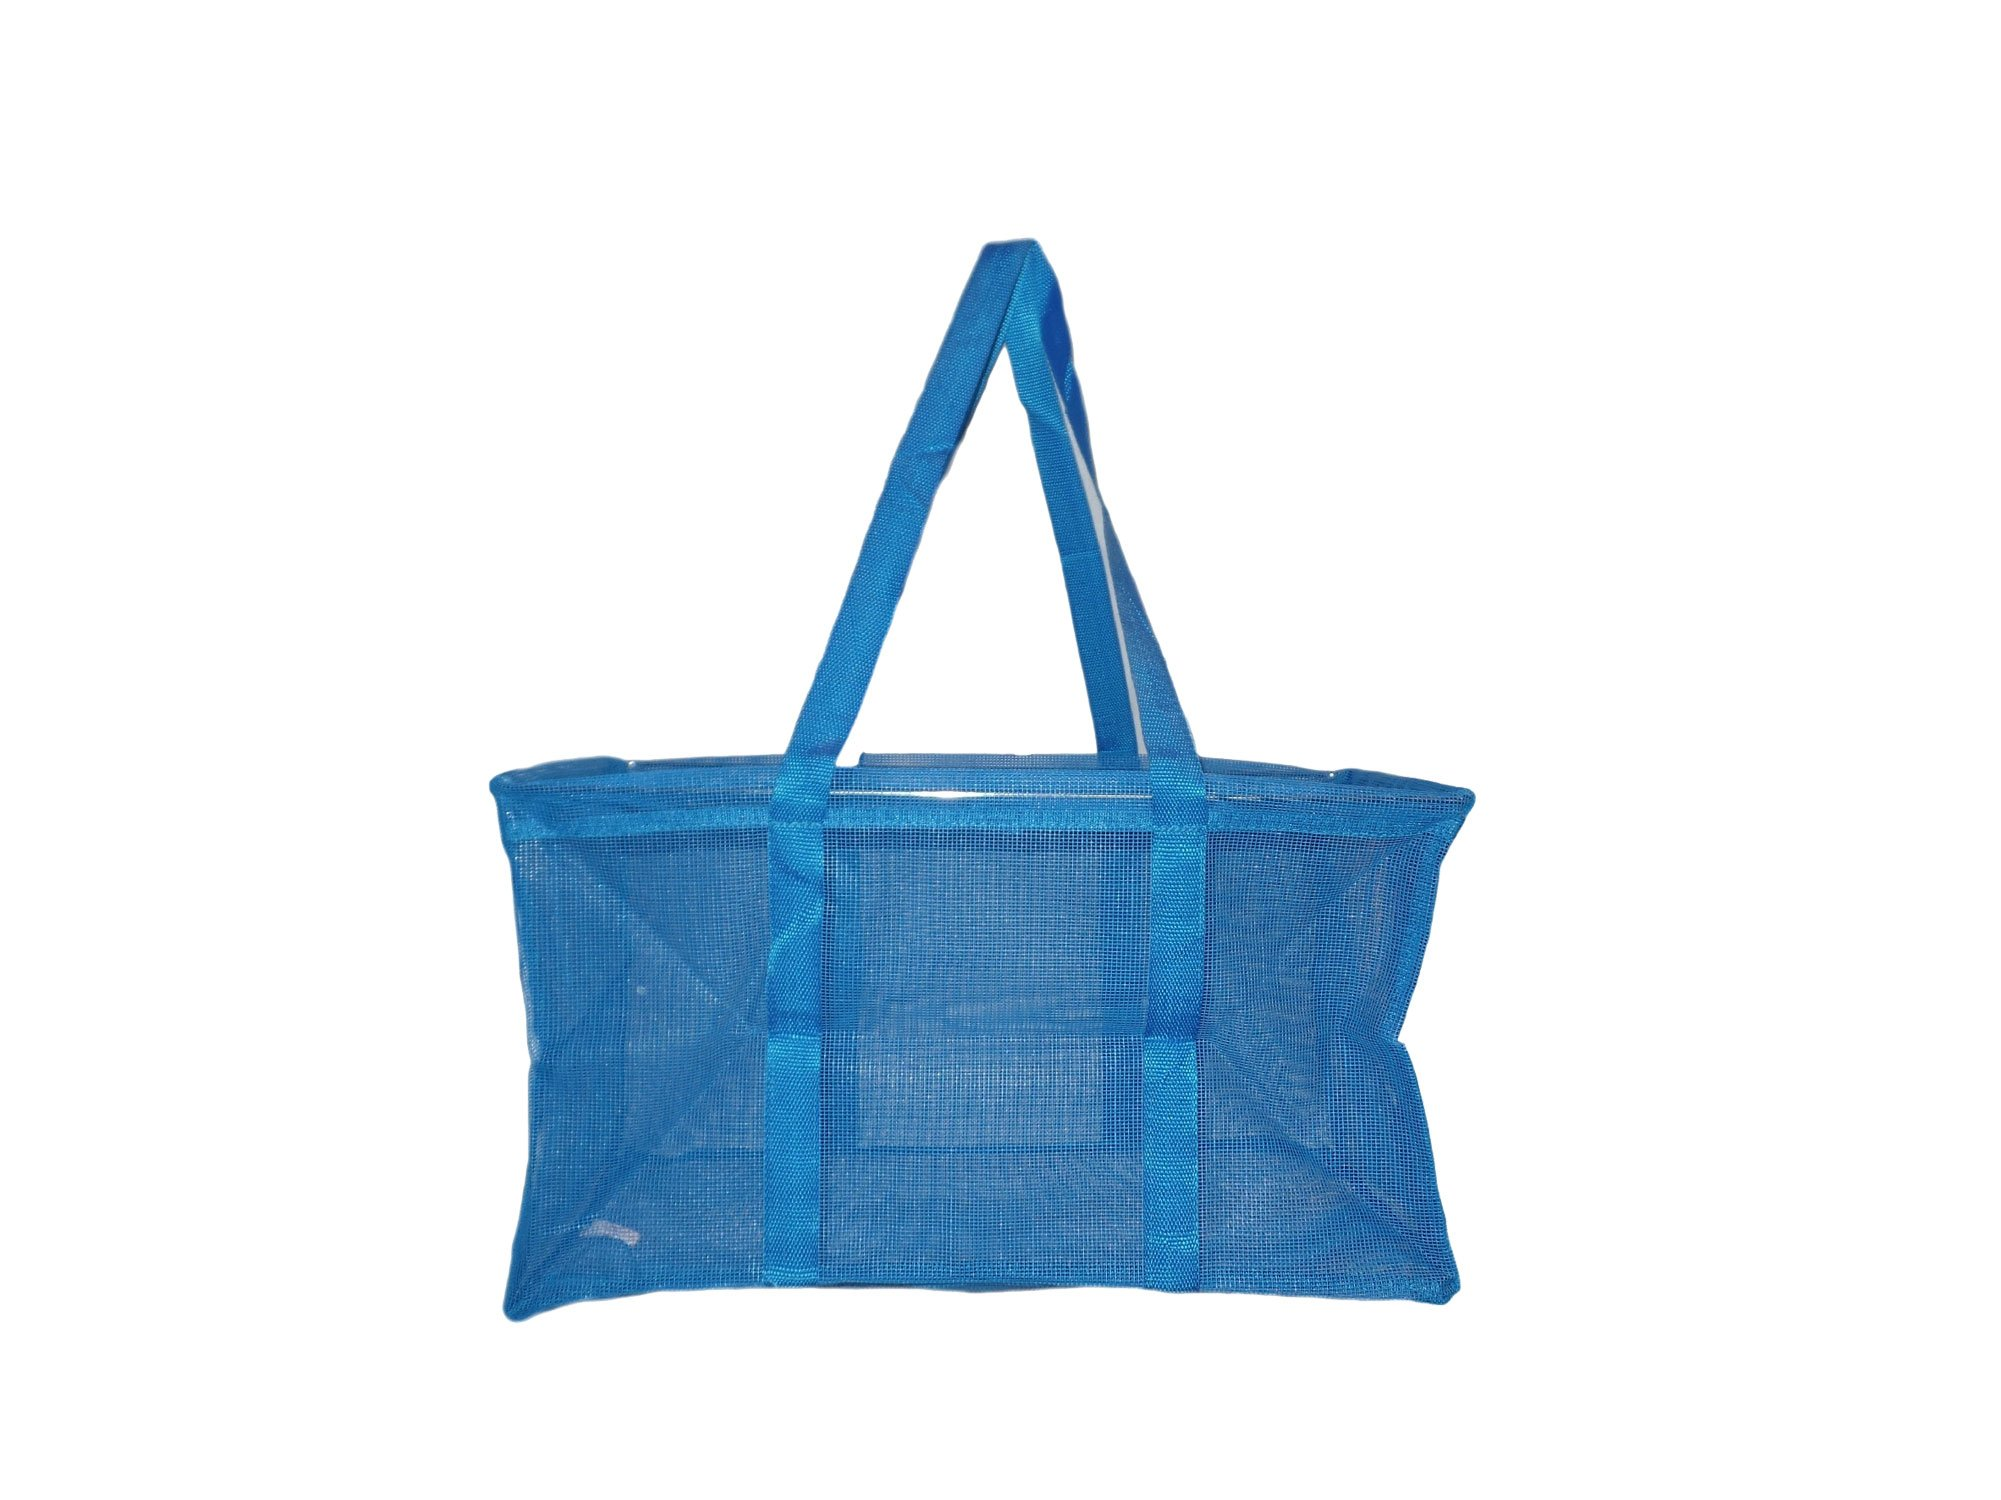 Mesh Ultimate Tote - Carry All Organizer Bag - A Summer Beach Must Have (Royal Blue)